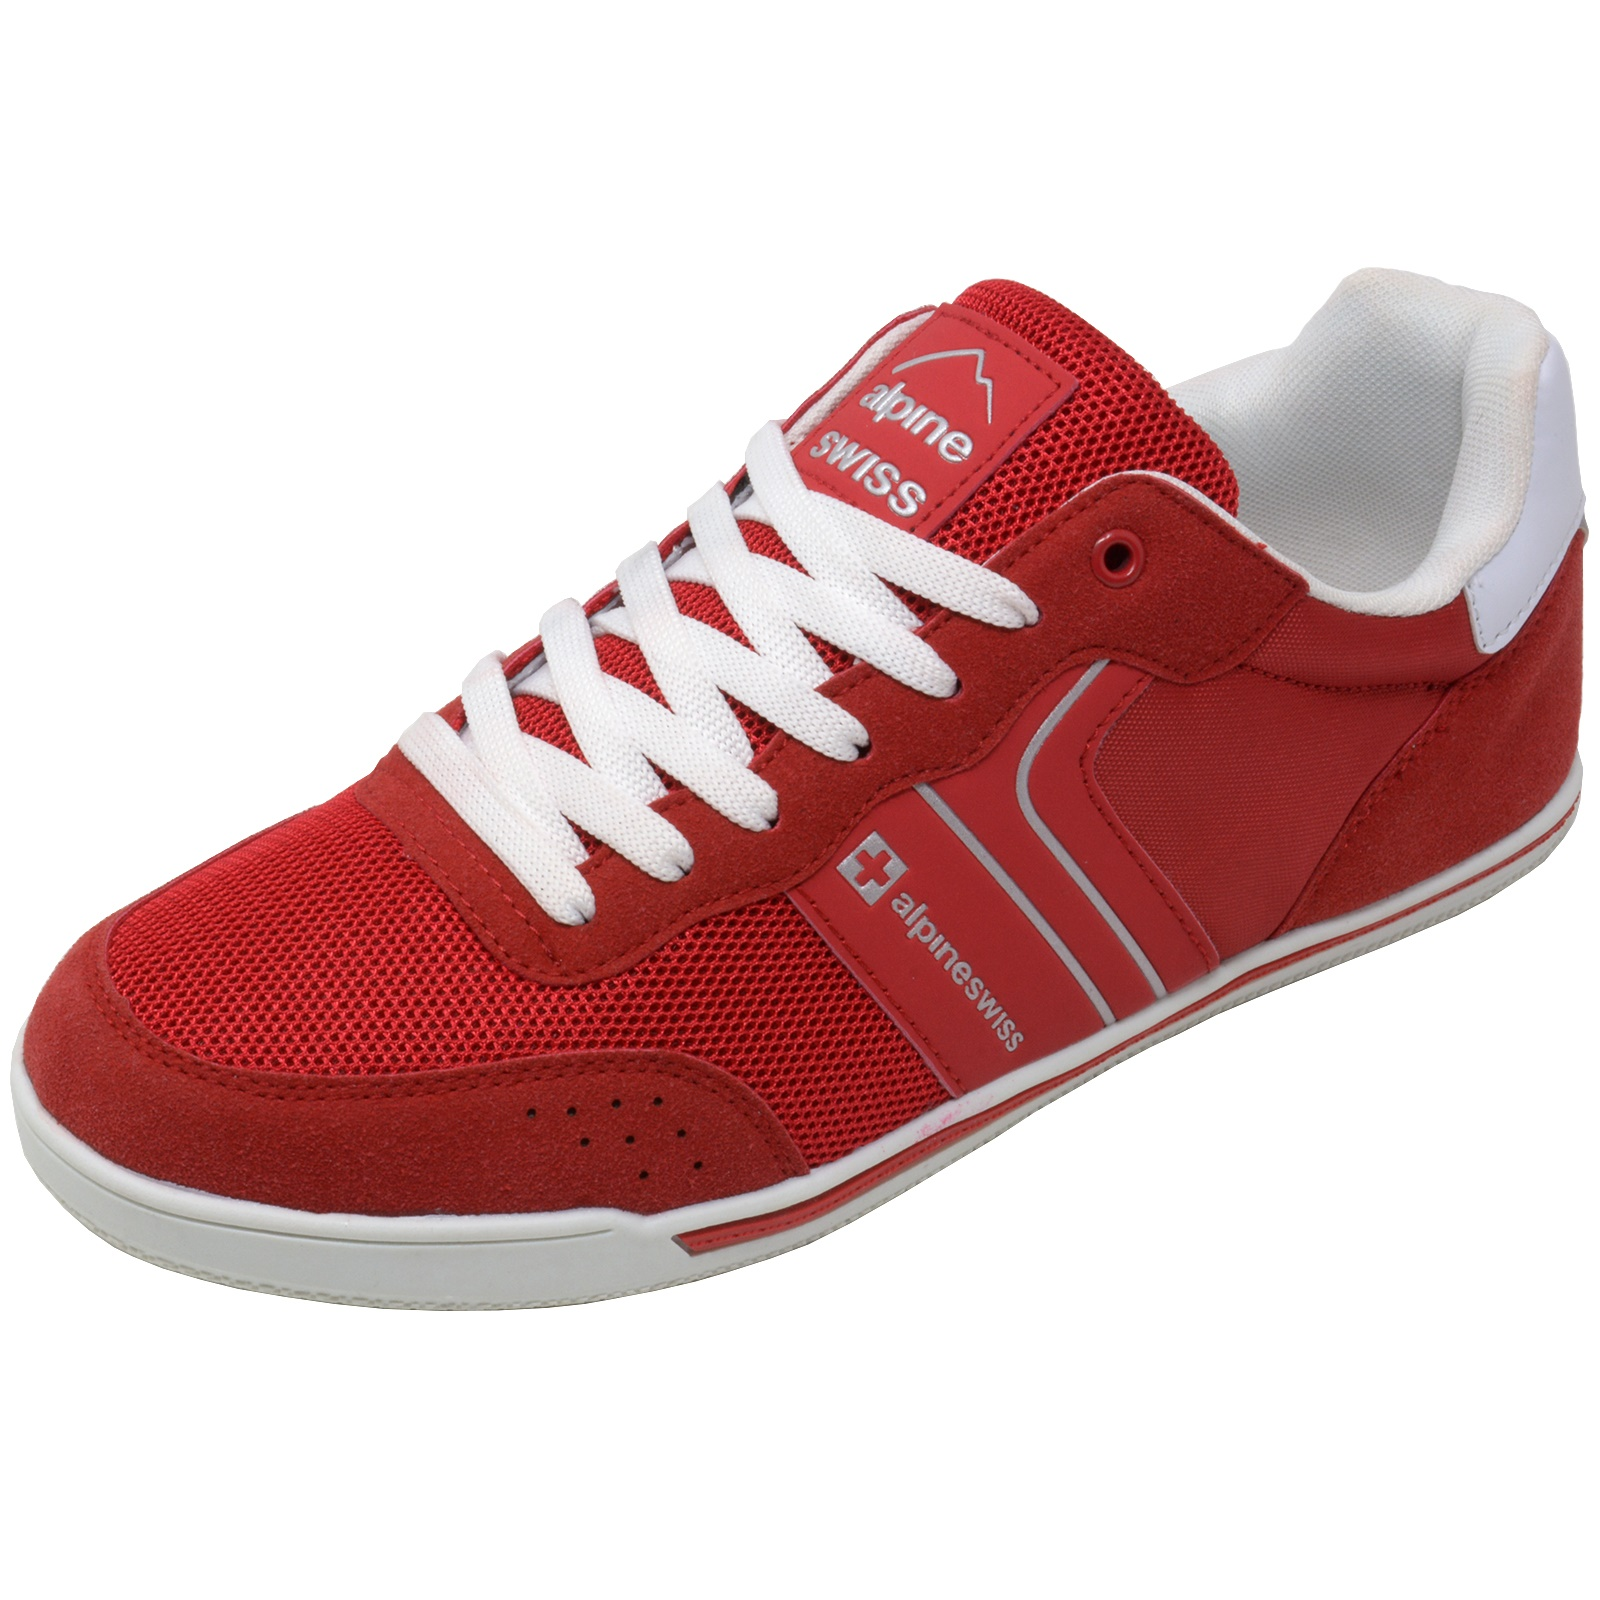 Alpine-Swiss-Liam-Mens-Fashion-Sneakers-Suede-Trim-Low-Top-Lace-Up-Tennis-Shoes thumbnail 57